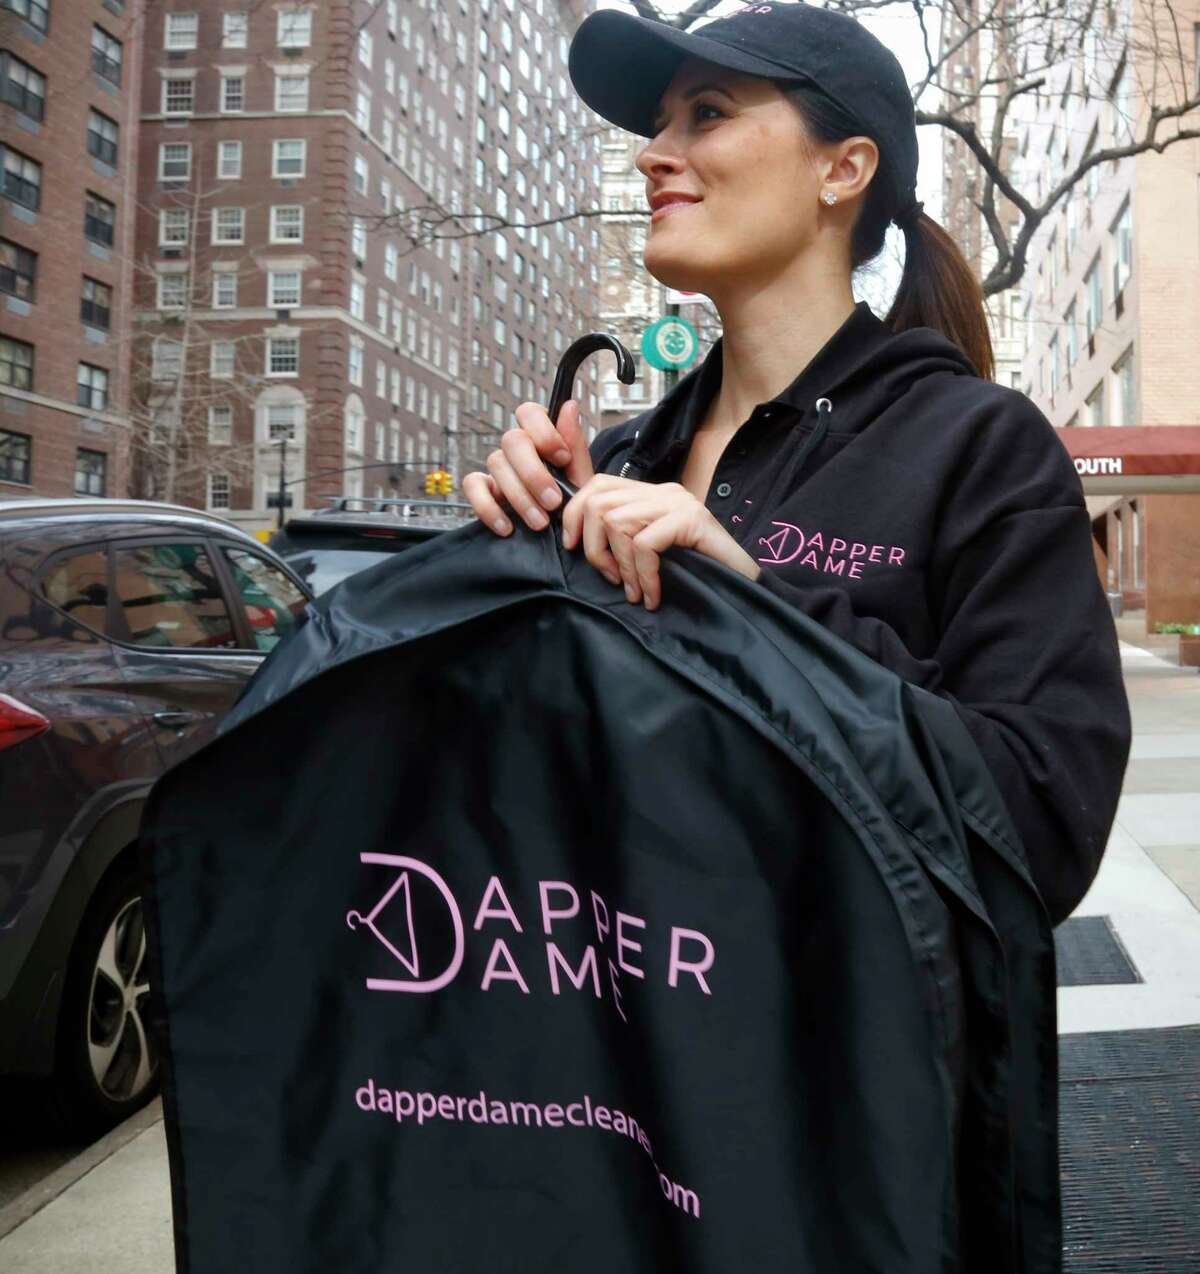 In this Tuesday, April 11, 2017, photo, Reilly Starr, founder and president of Dapper Dame, a dry cleaning and laundry business, poses for a picture at Manhattan's Sutton Place, near where some of her clients live, in New York. Starr launched in early 2017 without a storefront; using an app to connect with customers and contracting with a wholesale dry cleaning company to do the work. (AP Photo/Bebeto Matthews)